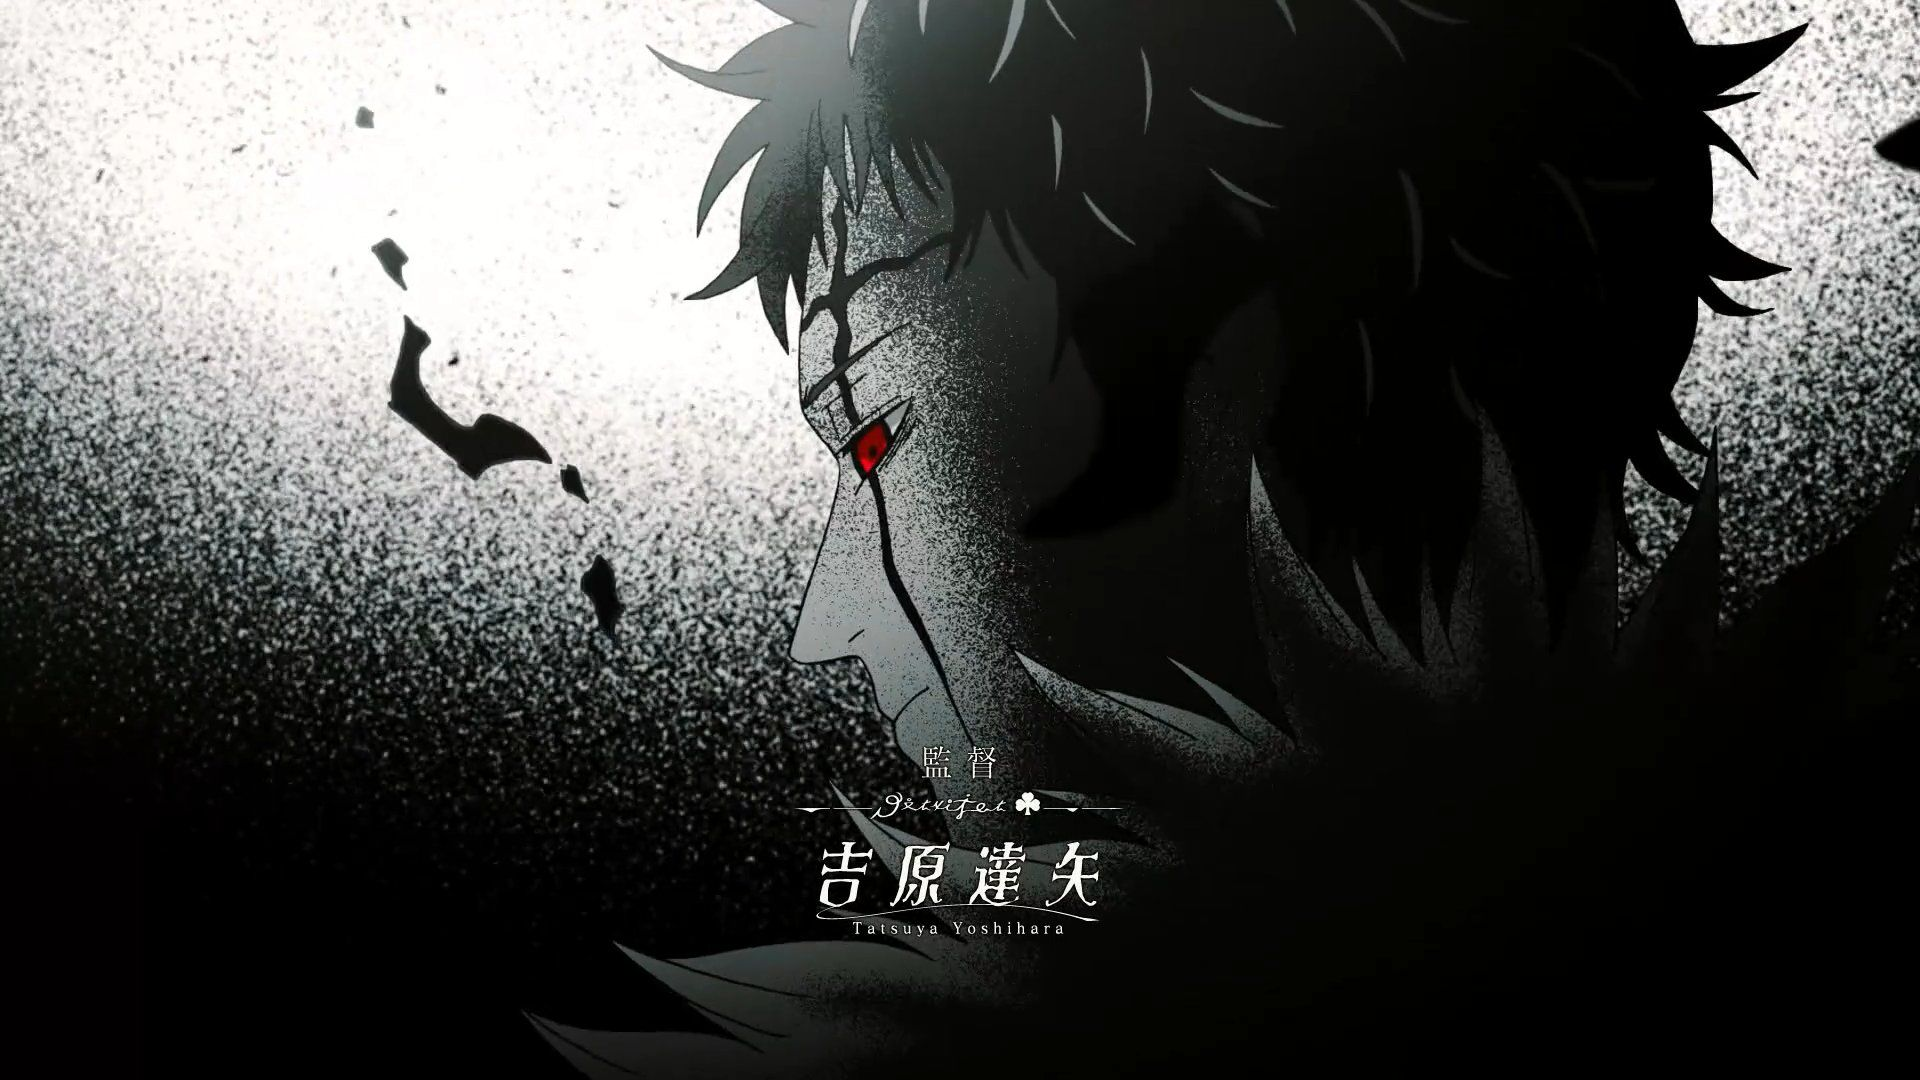 Black Clover Chapter 272 Release Date Delay, Raw Scans and Read Online